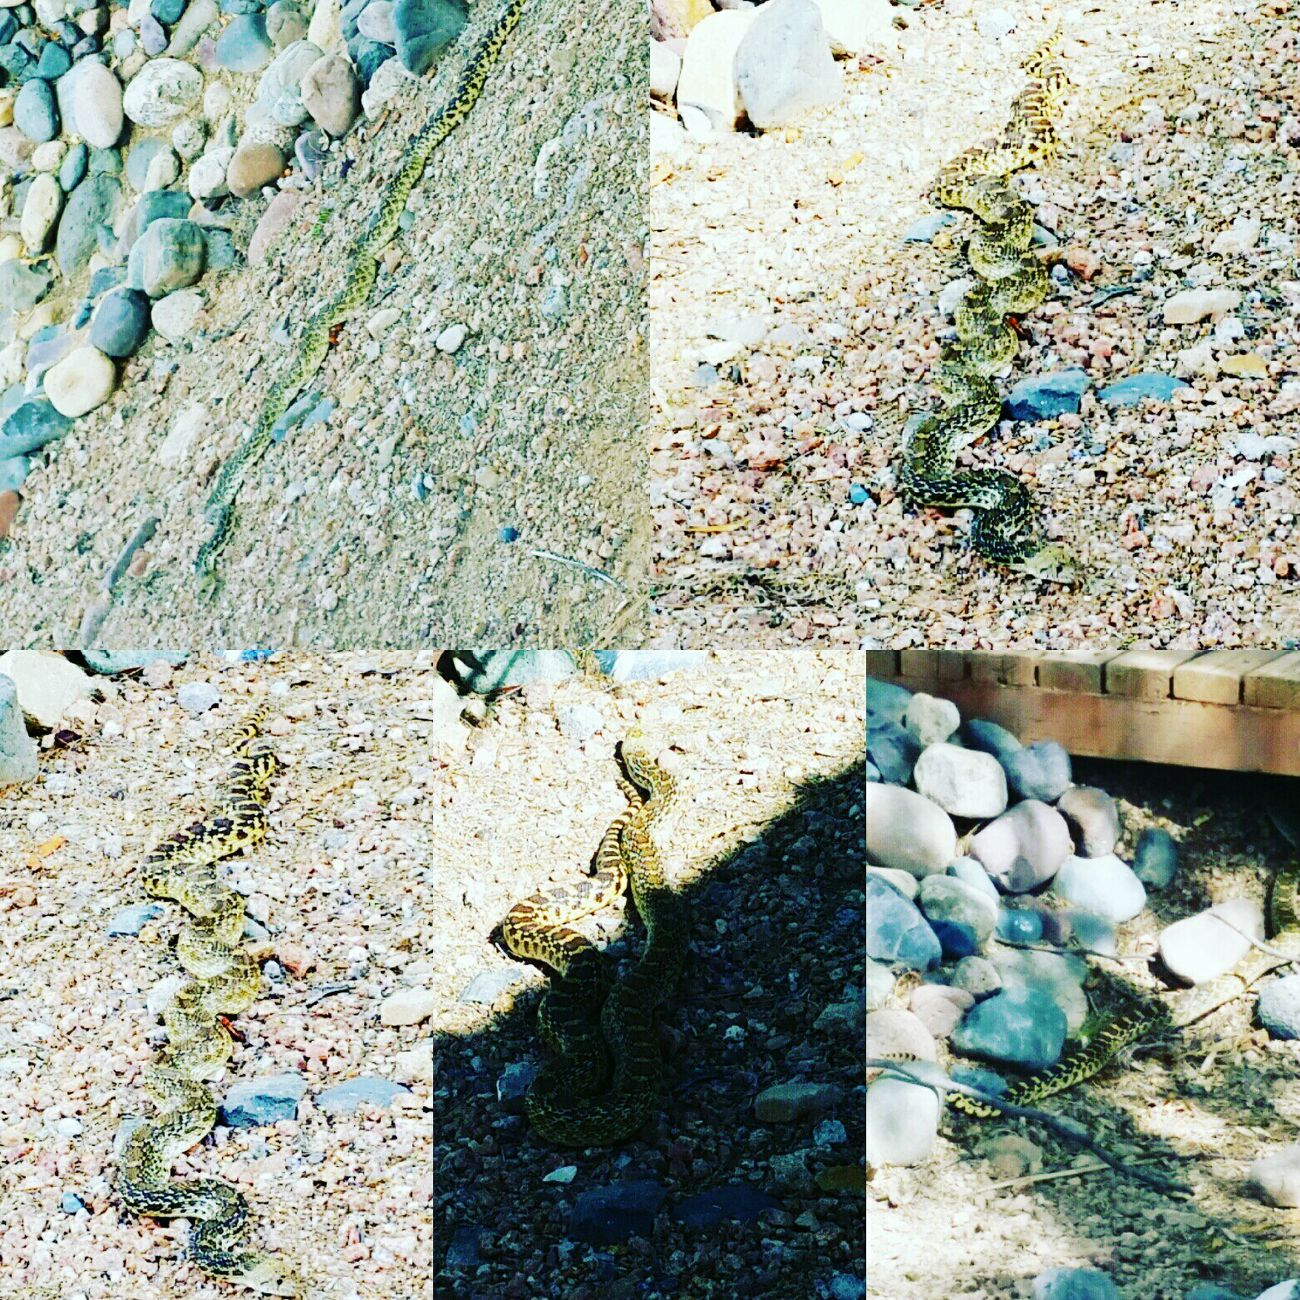 High Angle View Poisonous Snakes Diamondback Rattle Snake Overhead View Beutiful Nature ExploreEverything My Back Yard Arizona Sonoran Desert Deadly Snake Deadlycreatures Surroundings Momentsinthesun